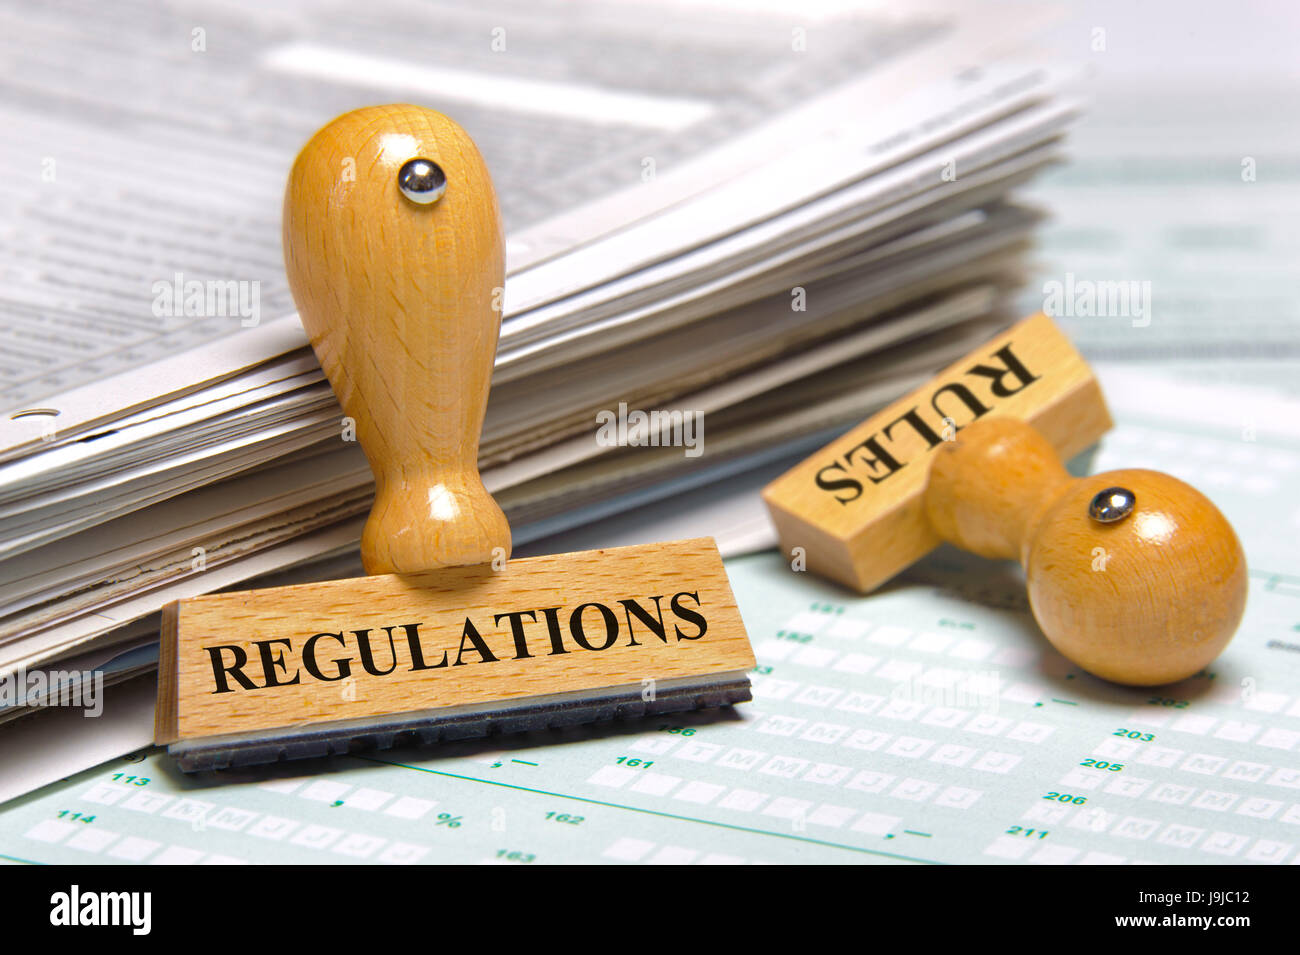 rubber stamps marked with regulations and rules - Stock Image